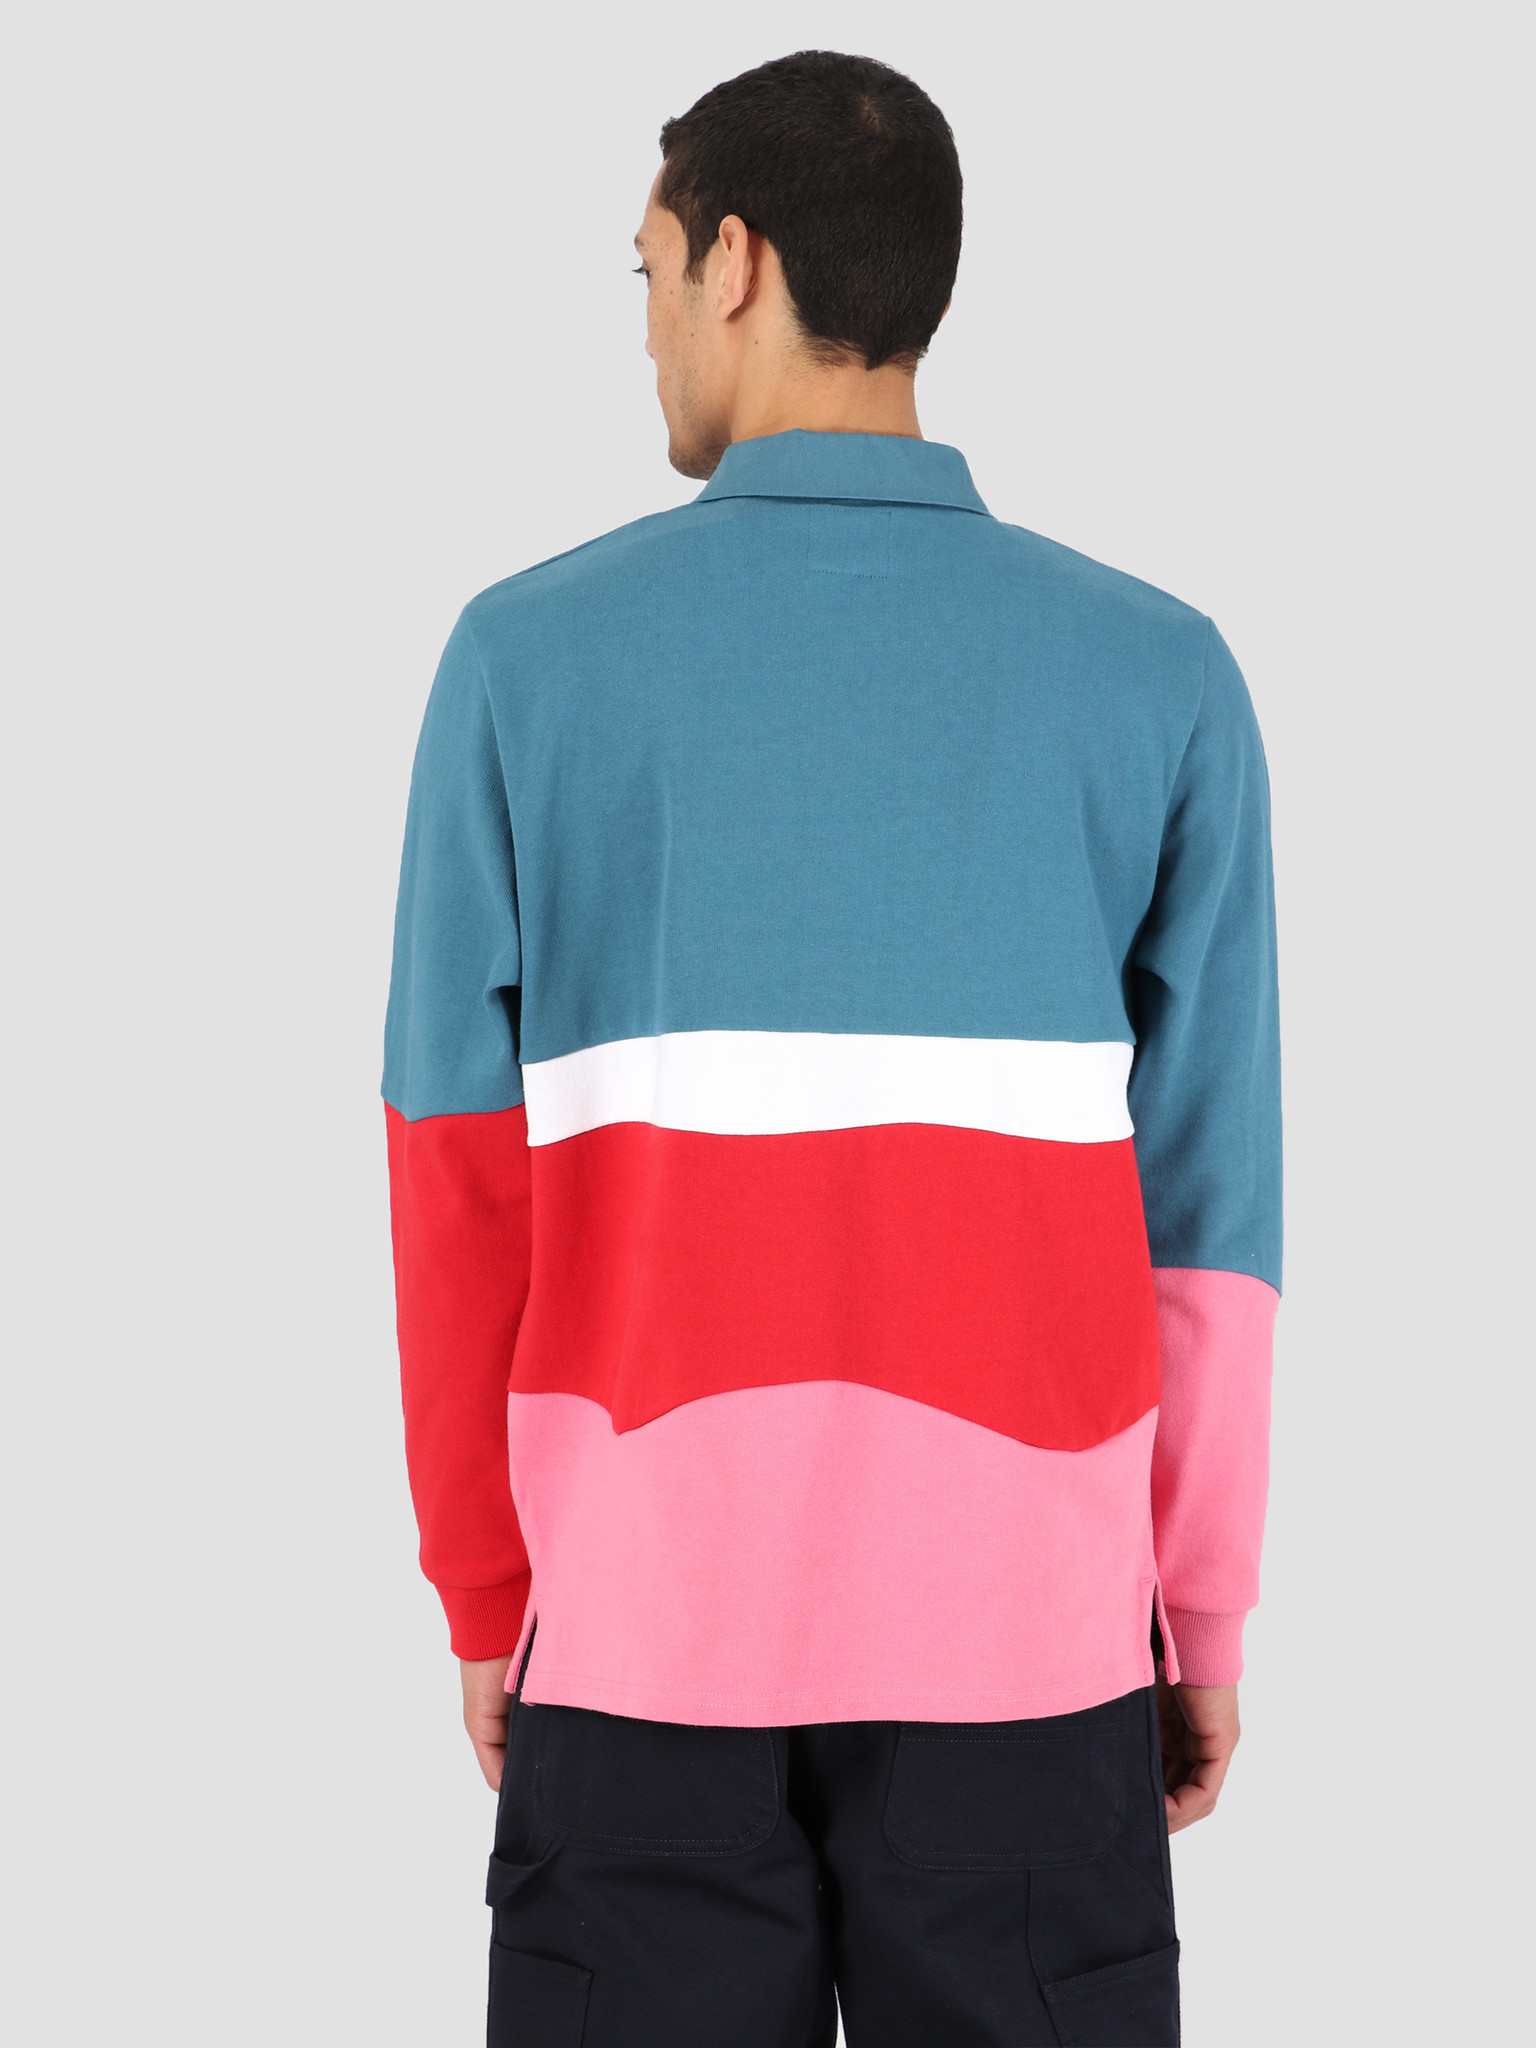 By Parra By Parra Rugby Shirt Meadows Multi 42400